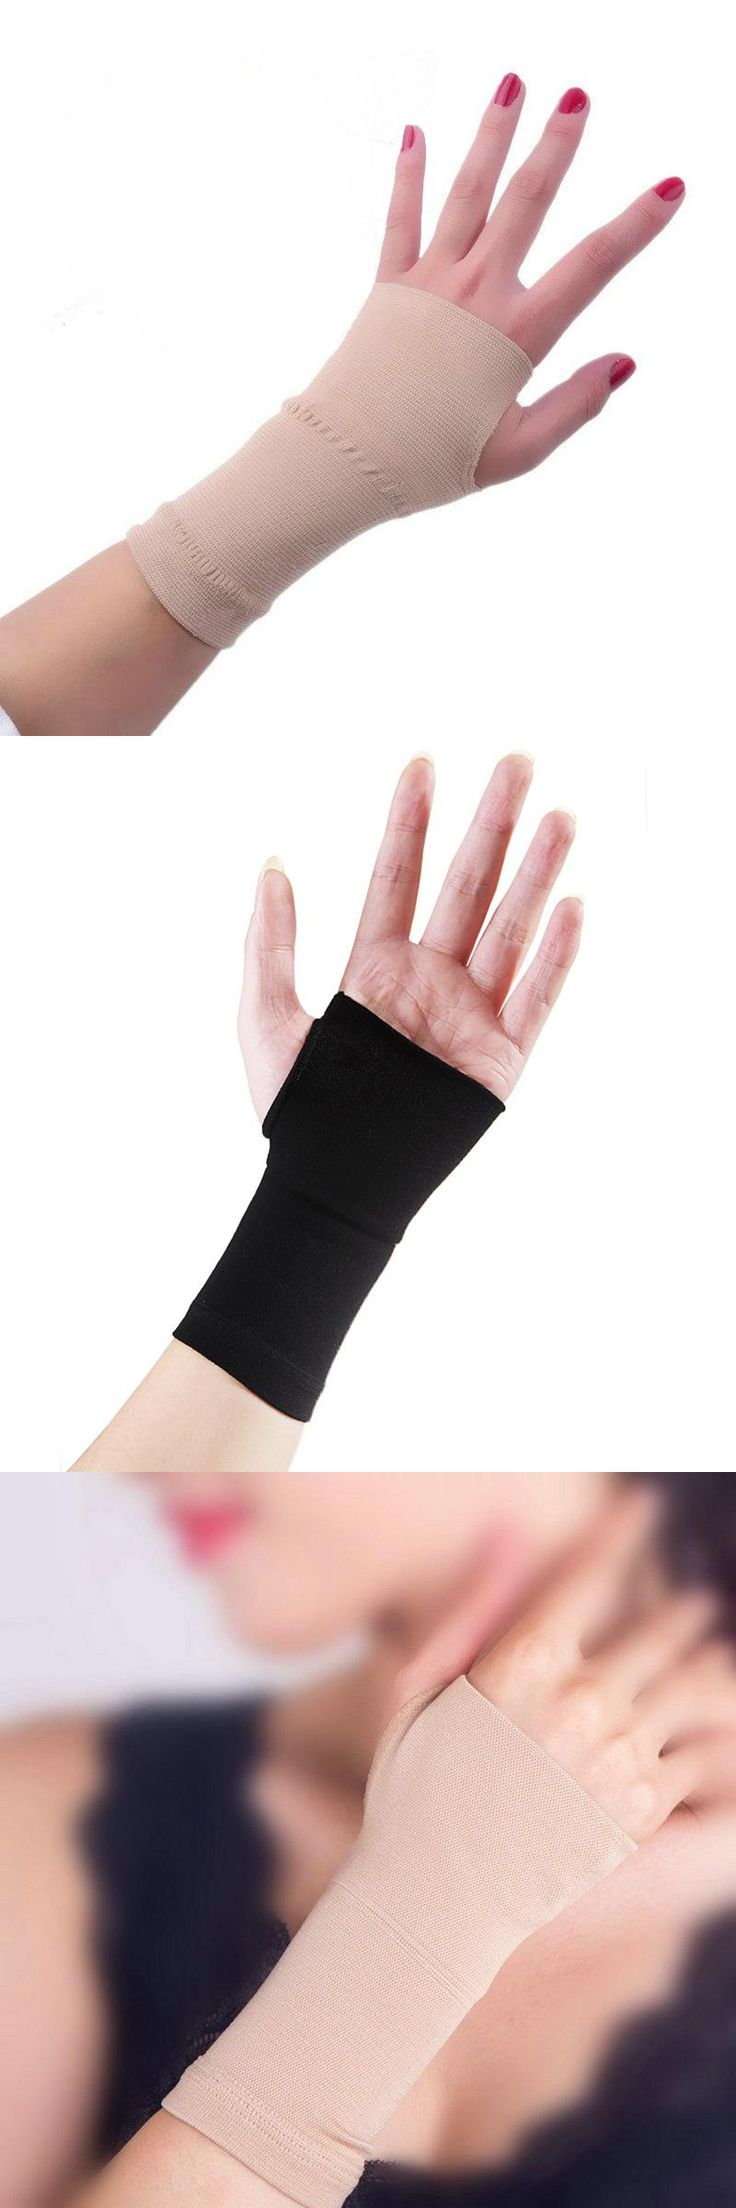 [Visit to Buy] 2 Pcs Men Women Elastic breathable Wrist Support Relief Prevent arthritis Basketball Tenis Volleyball Fitness Gloves Wristband #Advertisement